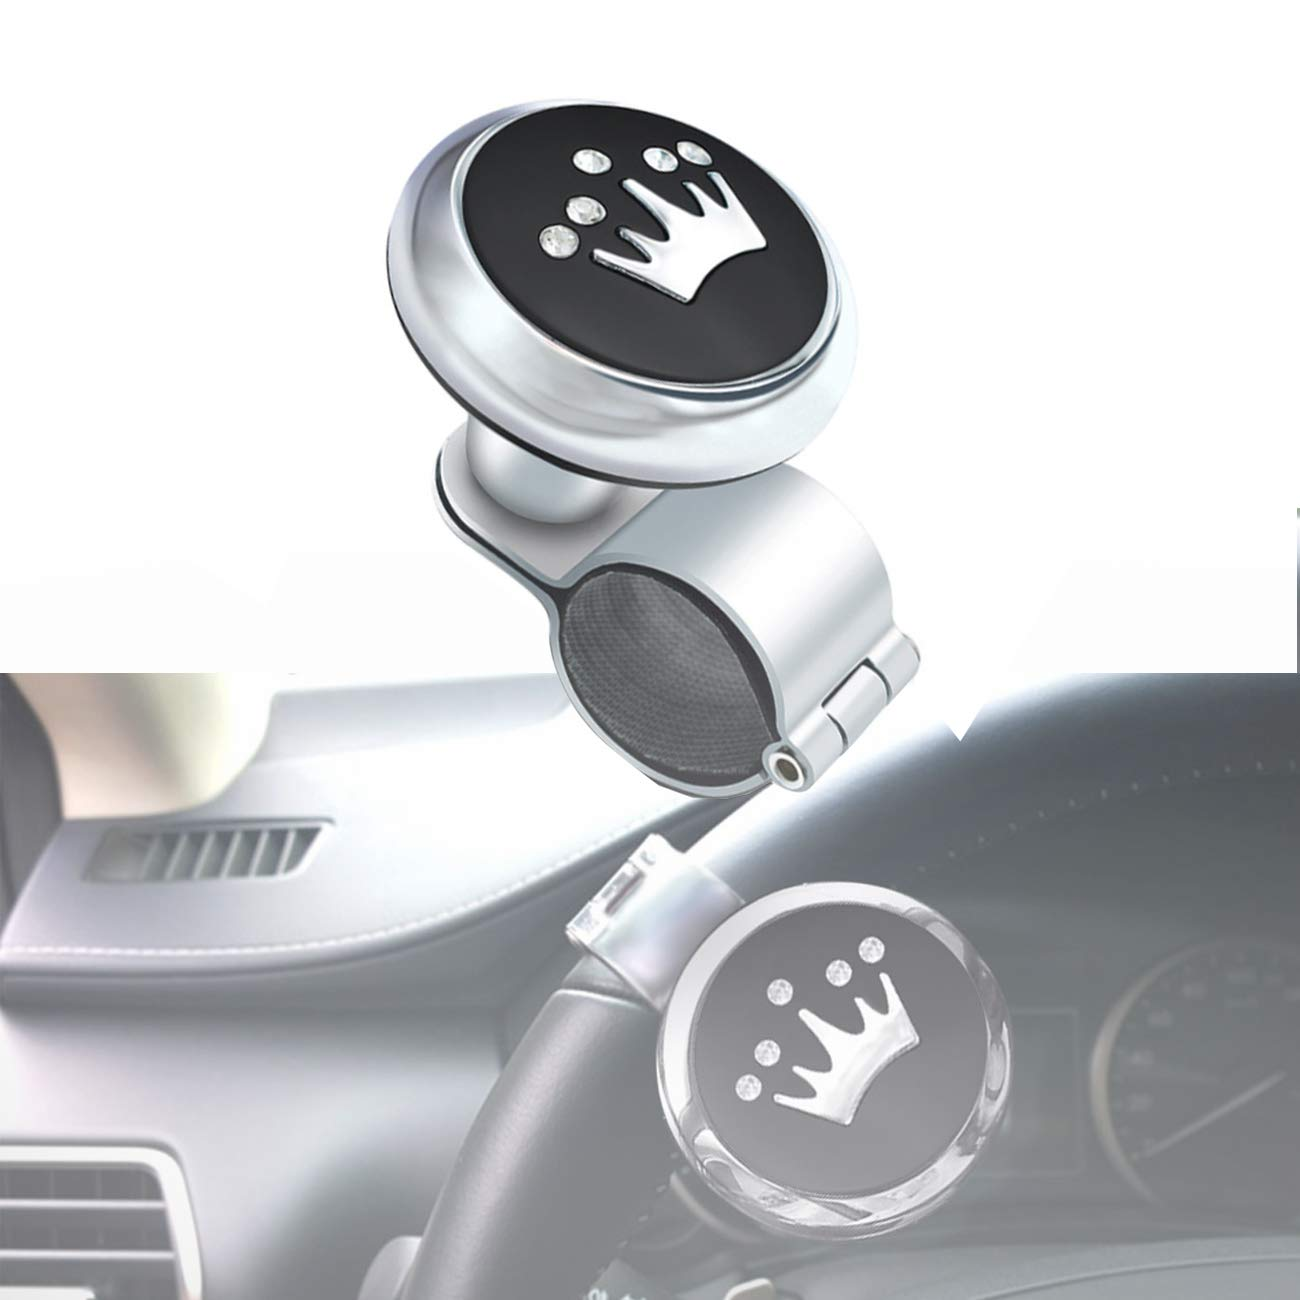 ALAVENTE Steering Knob, Steering Spinner Wheel Knob Steering Ball Universal for Car